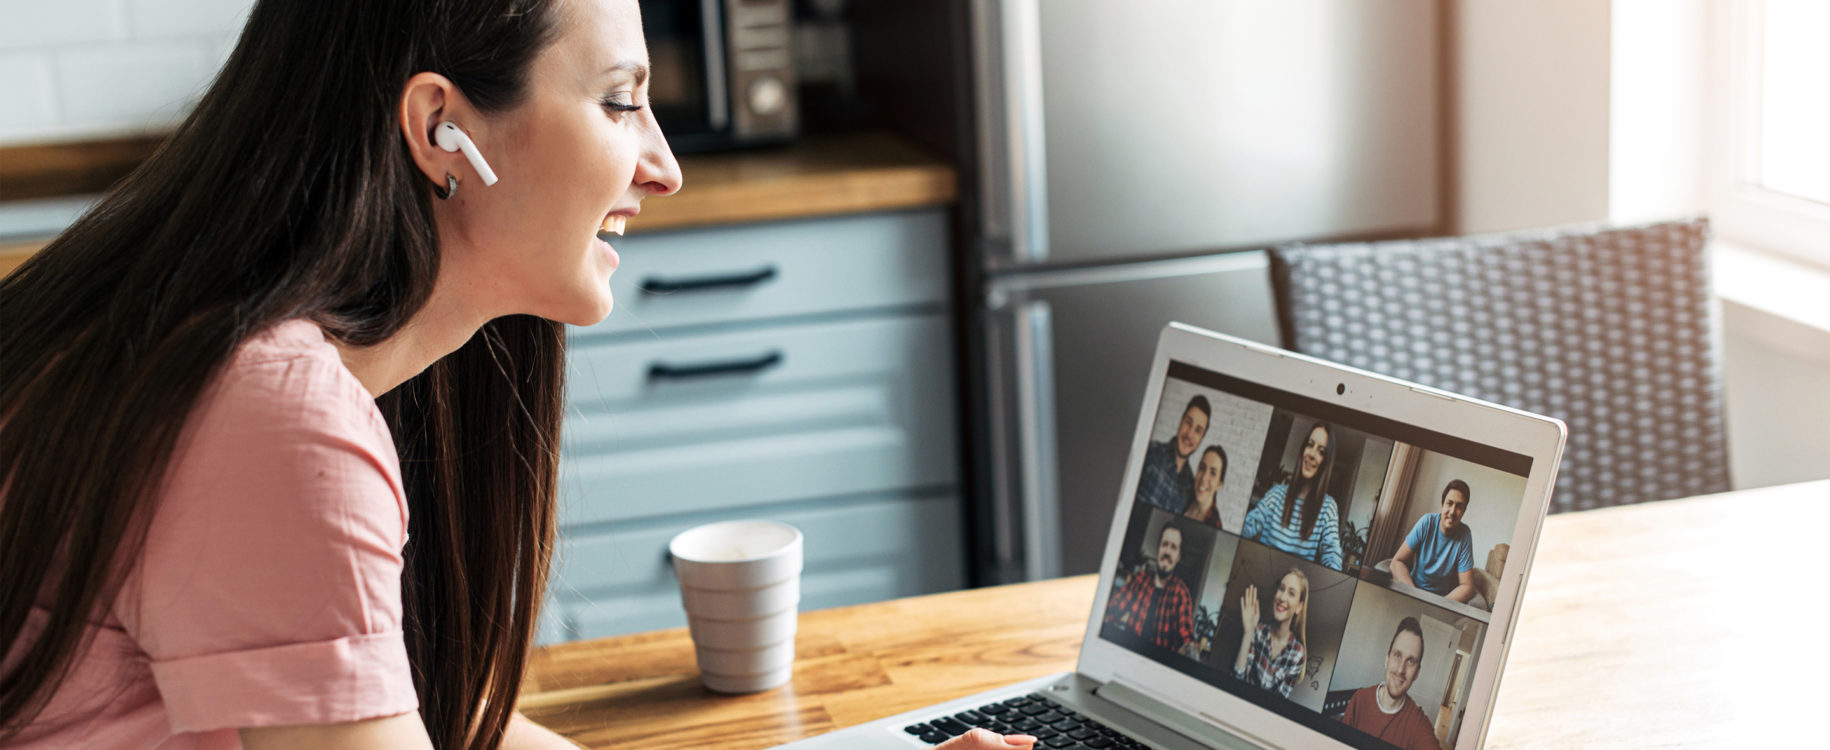 Virtual meetings, the new reality? How to improve communications with your team